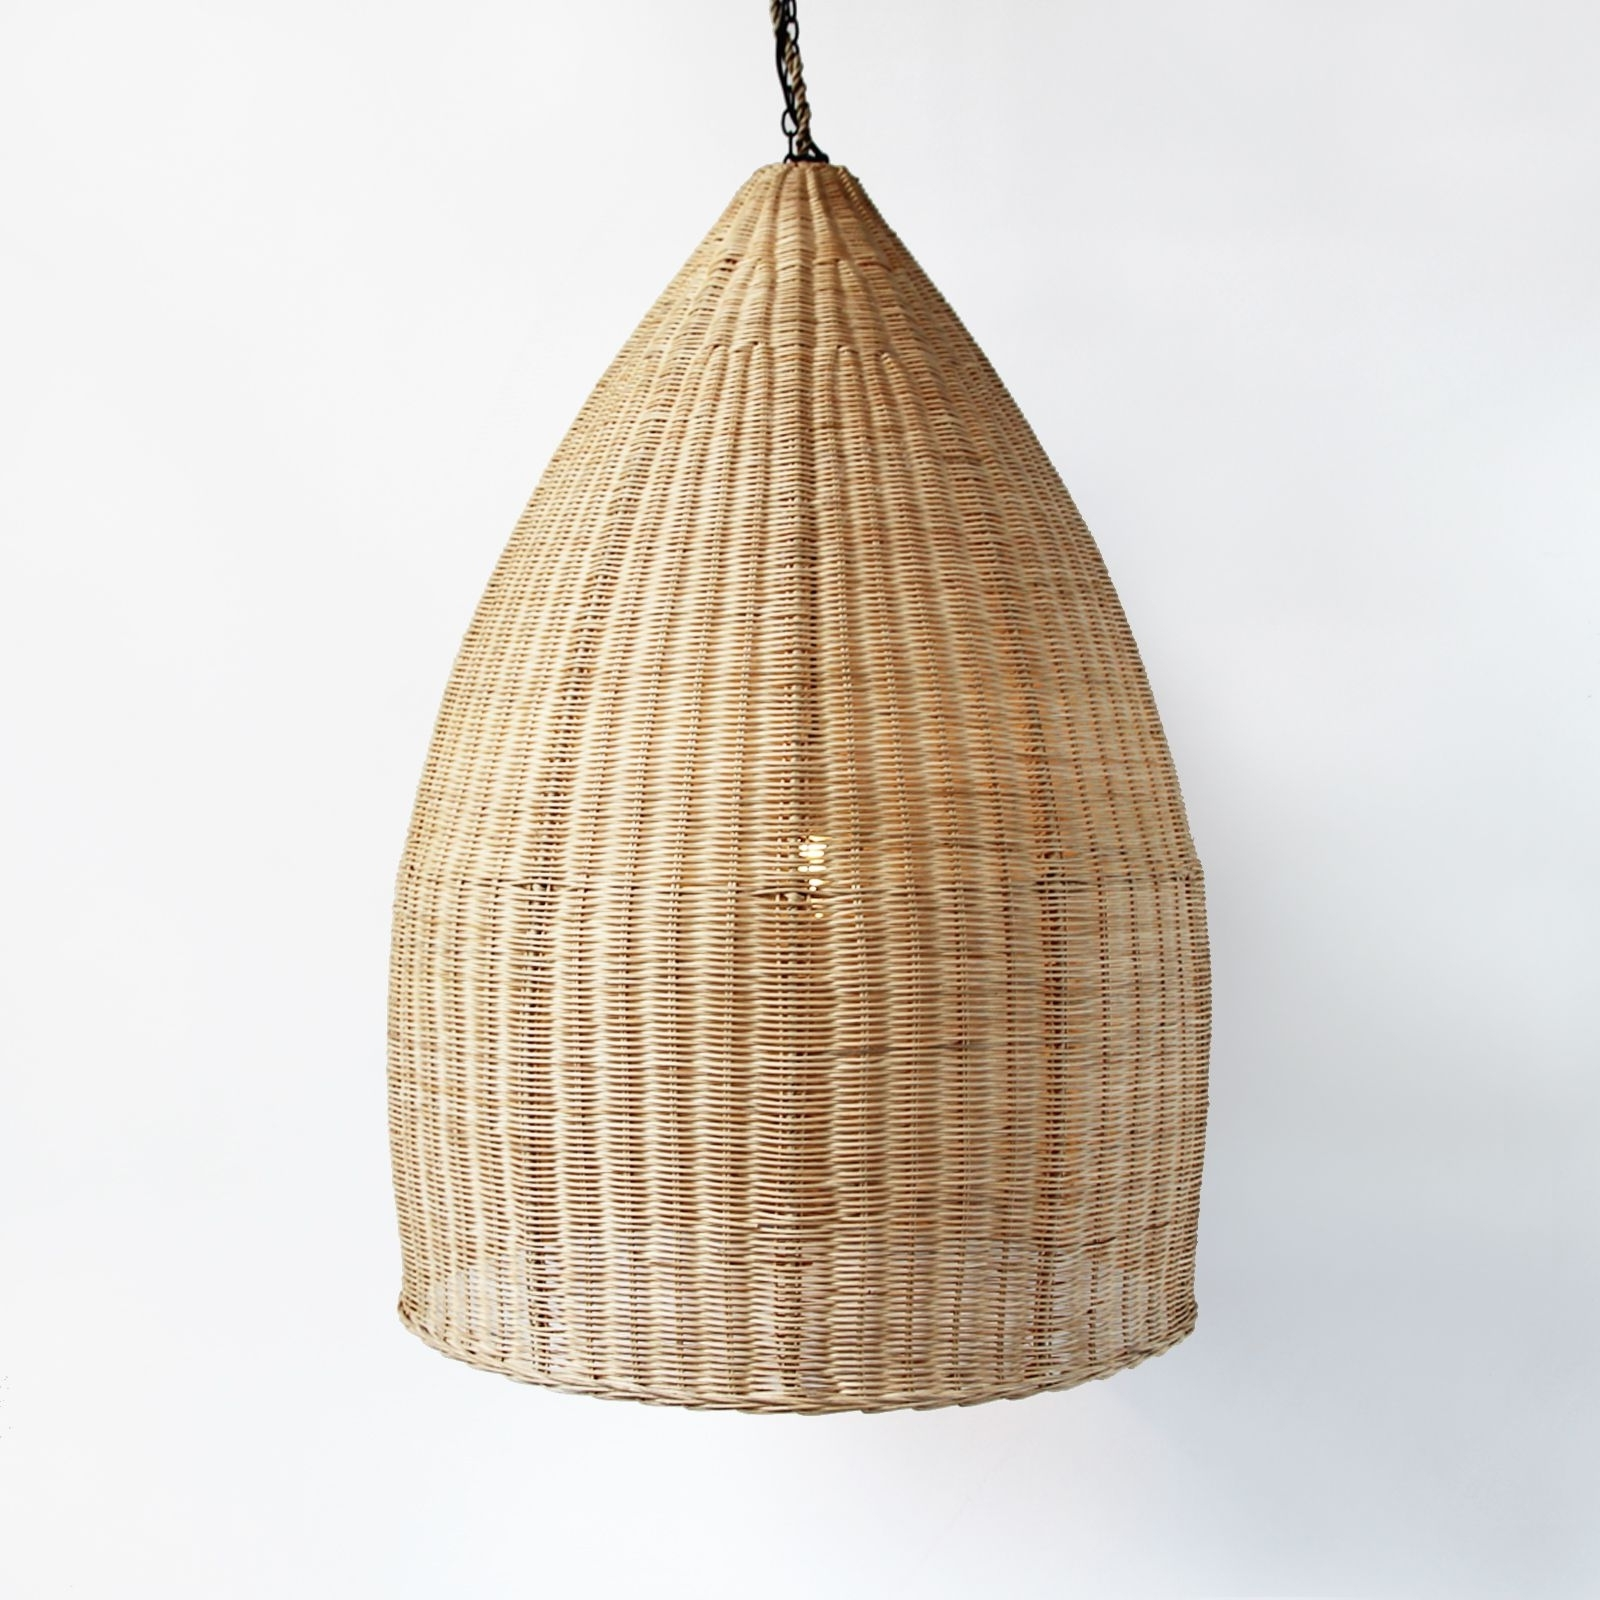 2018 Large Hand Woven Pod Lantern In Natural Raw Rattan. Home Decor (View 14 of 20)